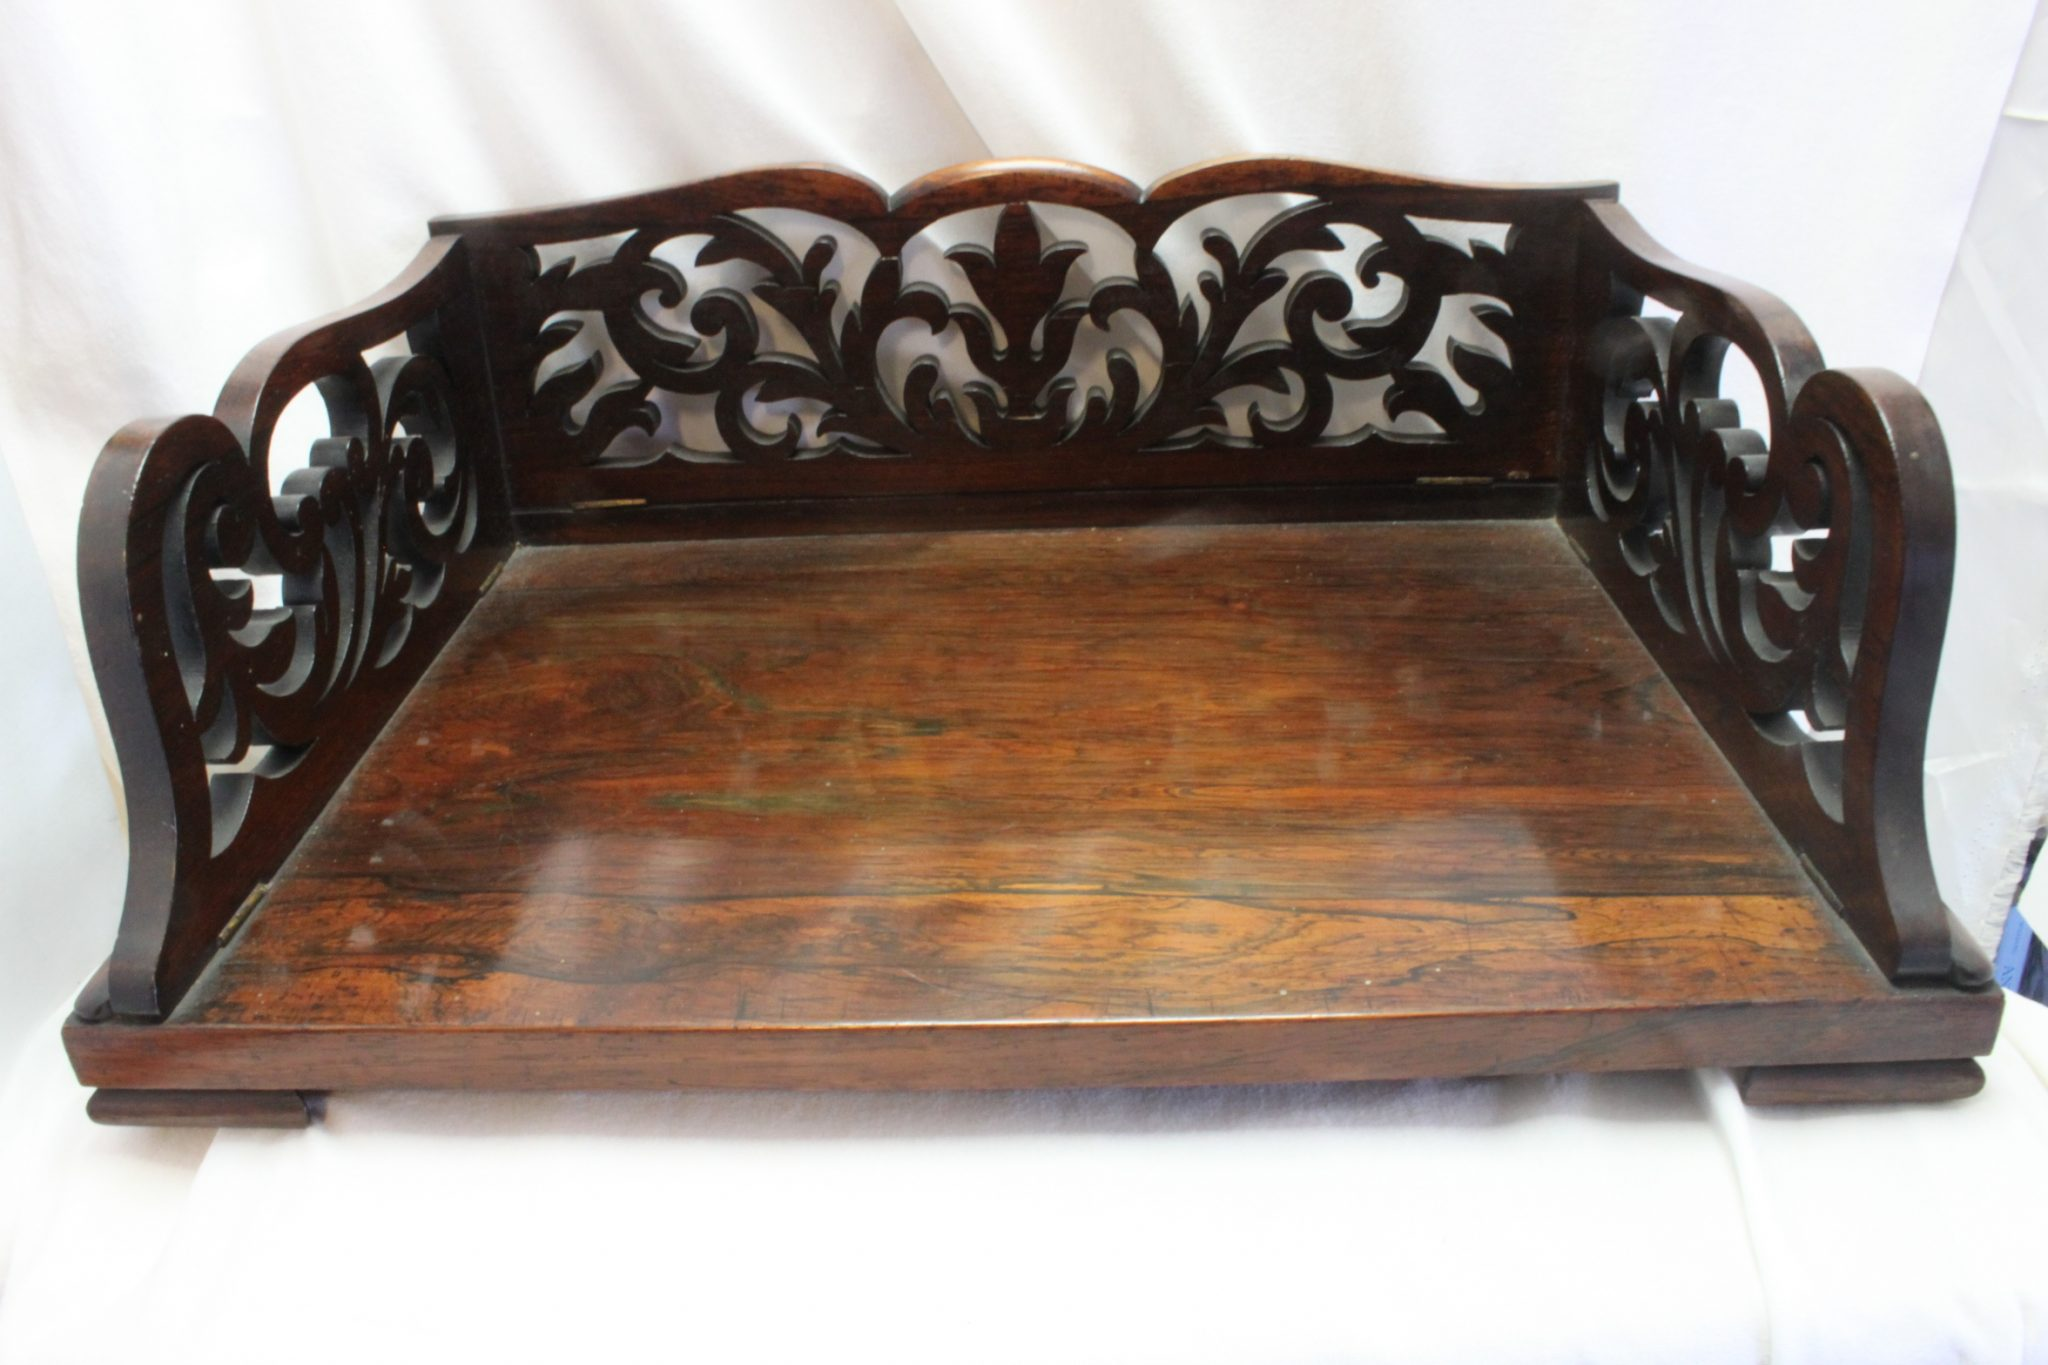 Rosewood desk top book stand with fretwork sides